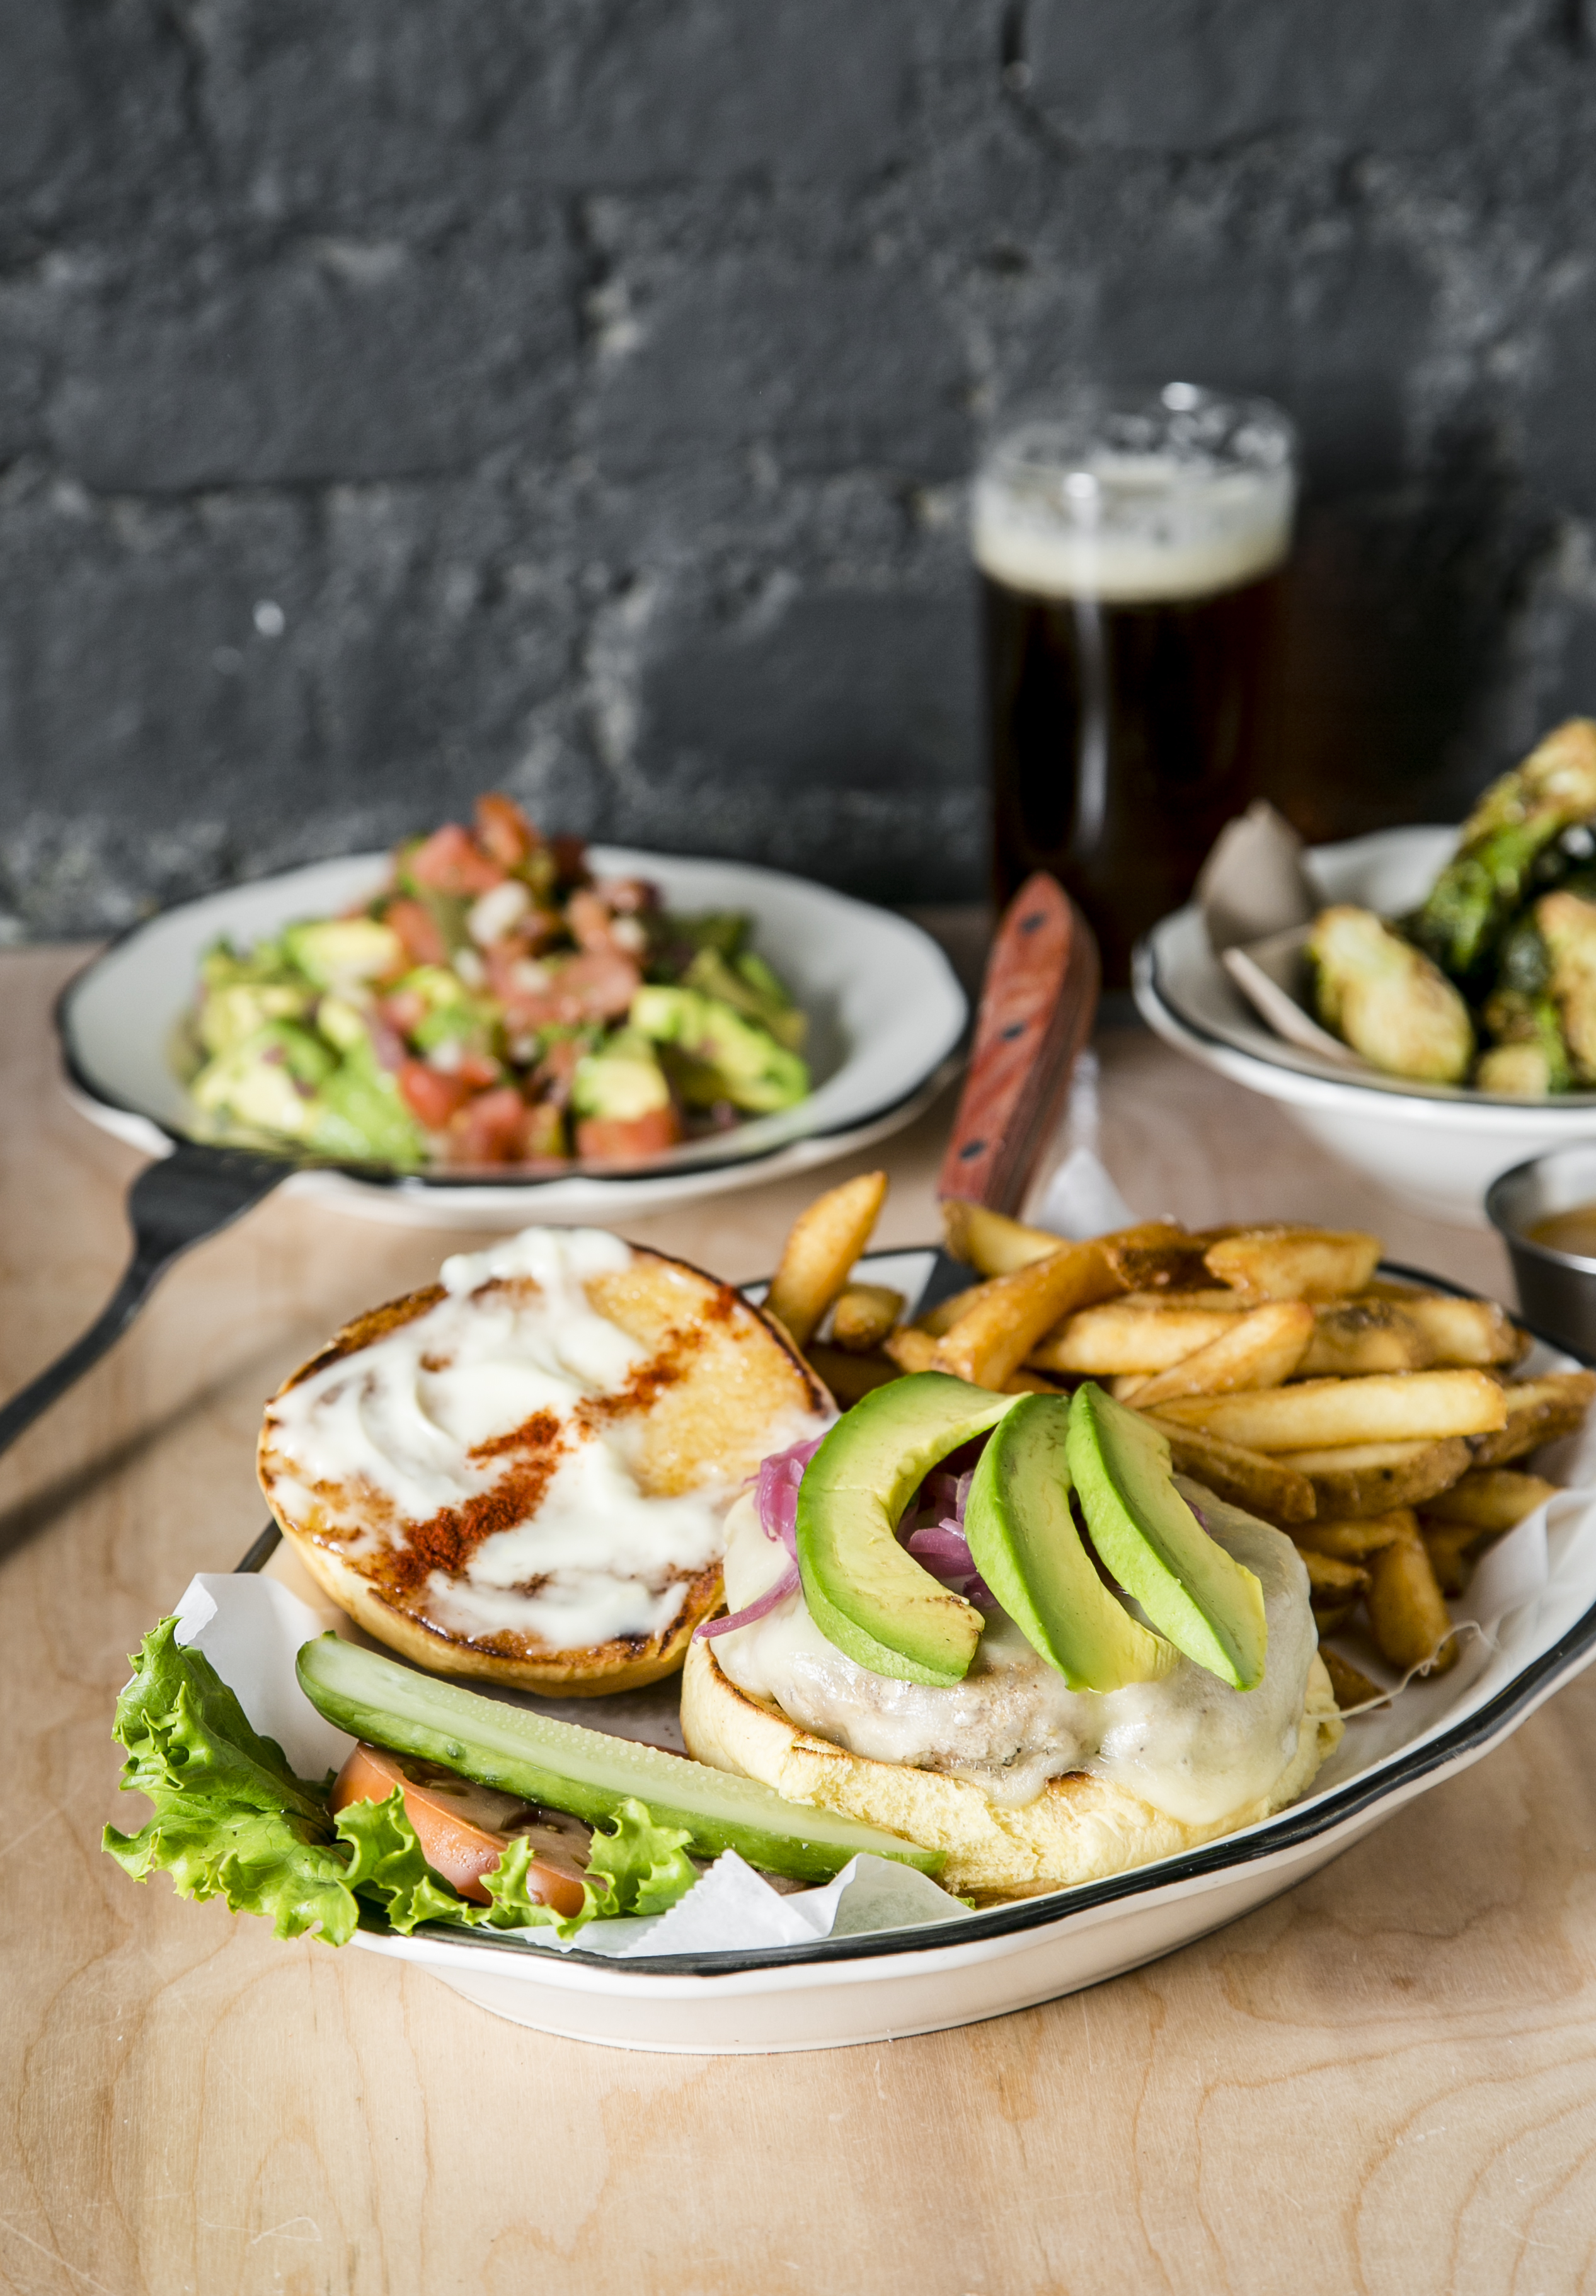 The Californian, with organic turkey, avocado, truffle mayo, and lots of Swiss cheese; behind, a burger salad for those who prefer to go bunless. (Samira Bouaou/Epoch Times)